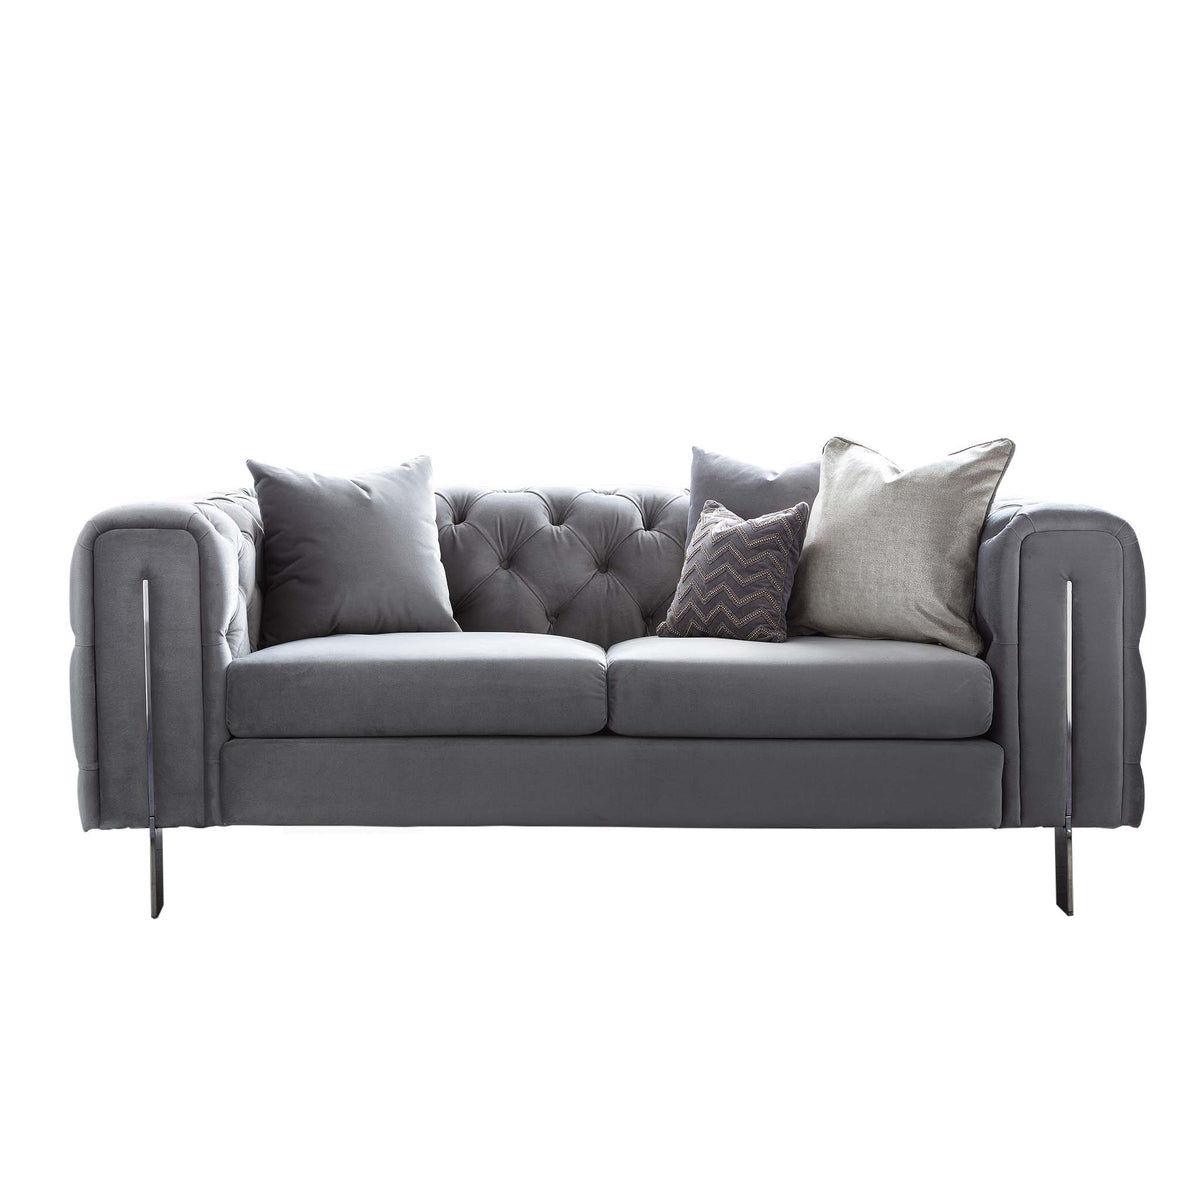 Ritz Grey Velvet 2 Seater Chesterfield Settee from Roseland Furniture